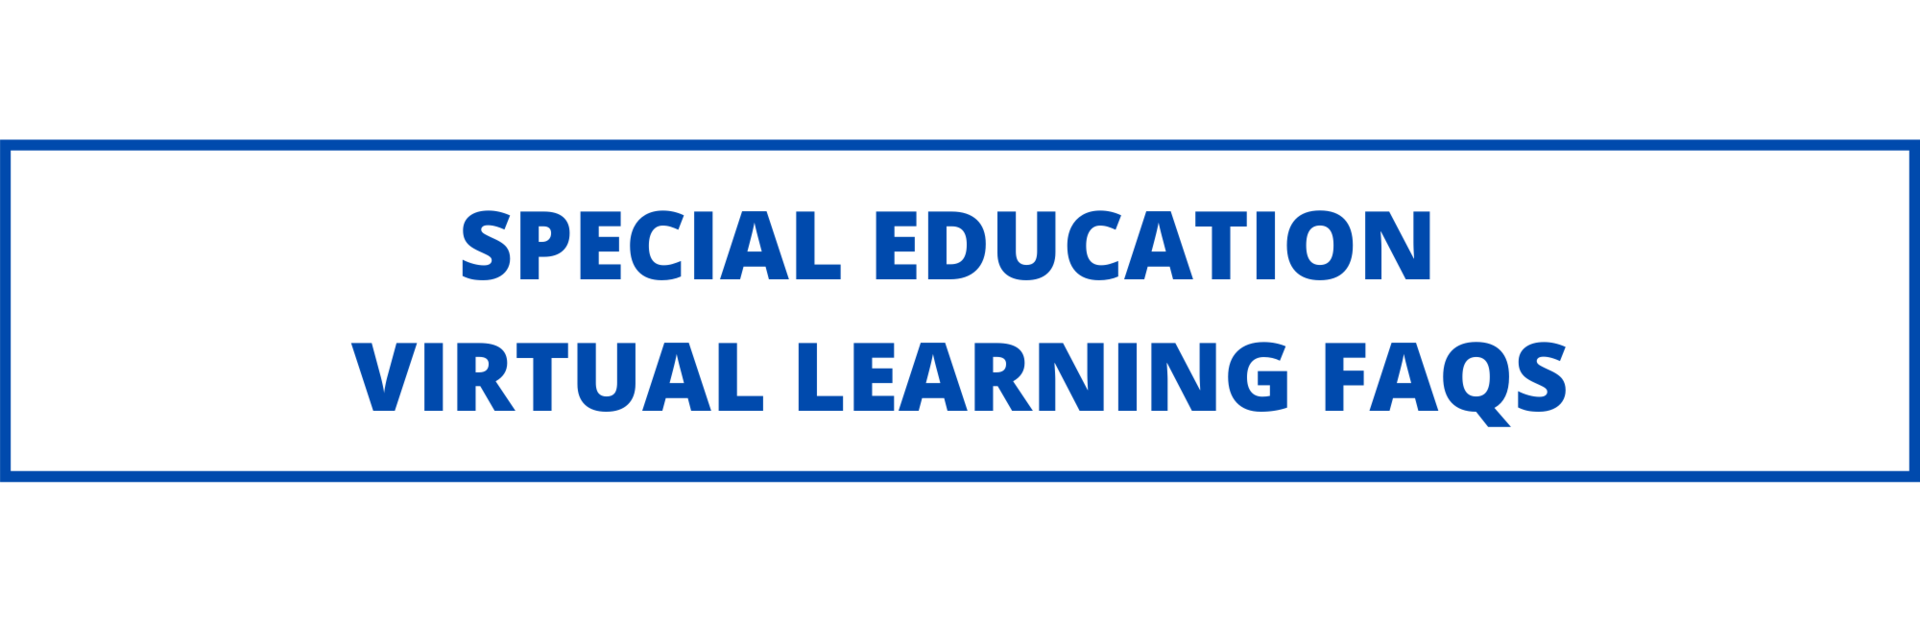 special education virtual learning FAQs